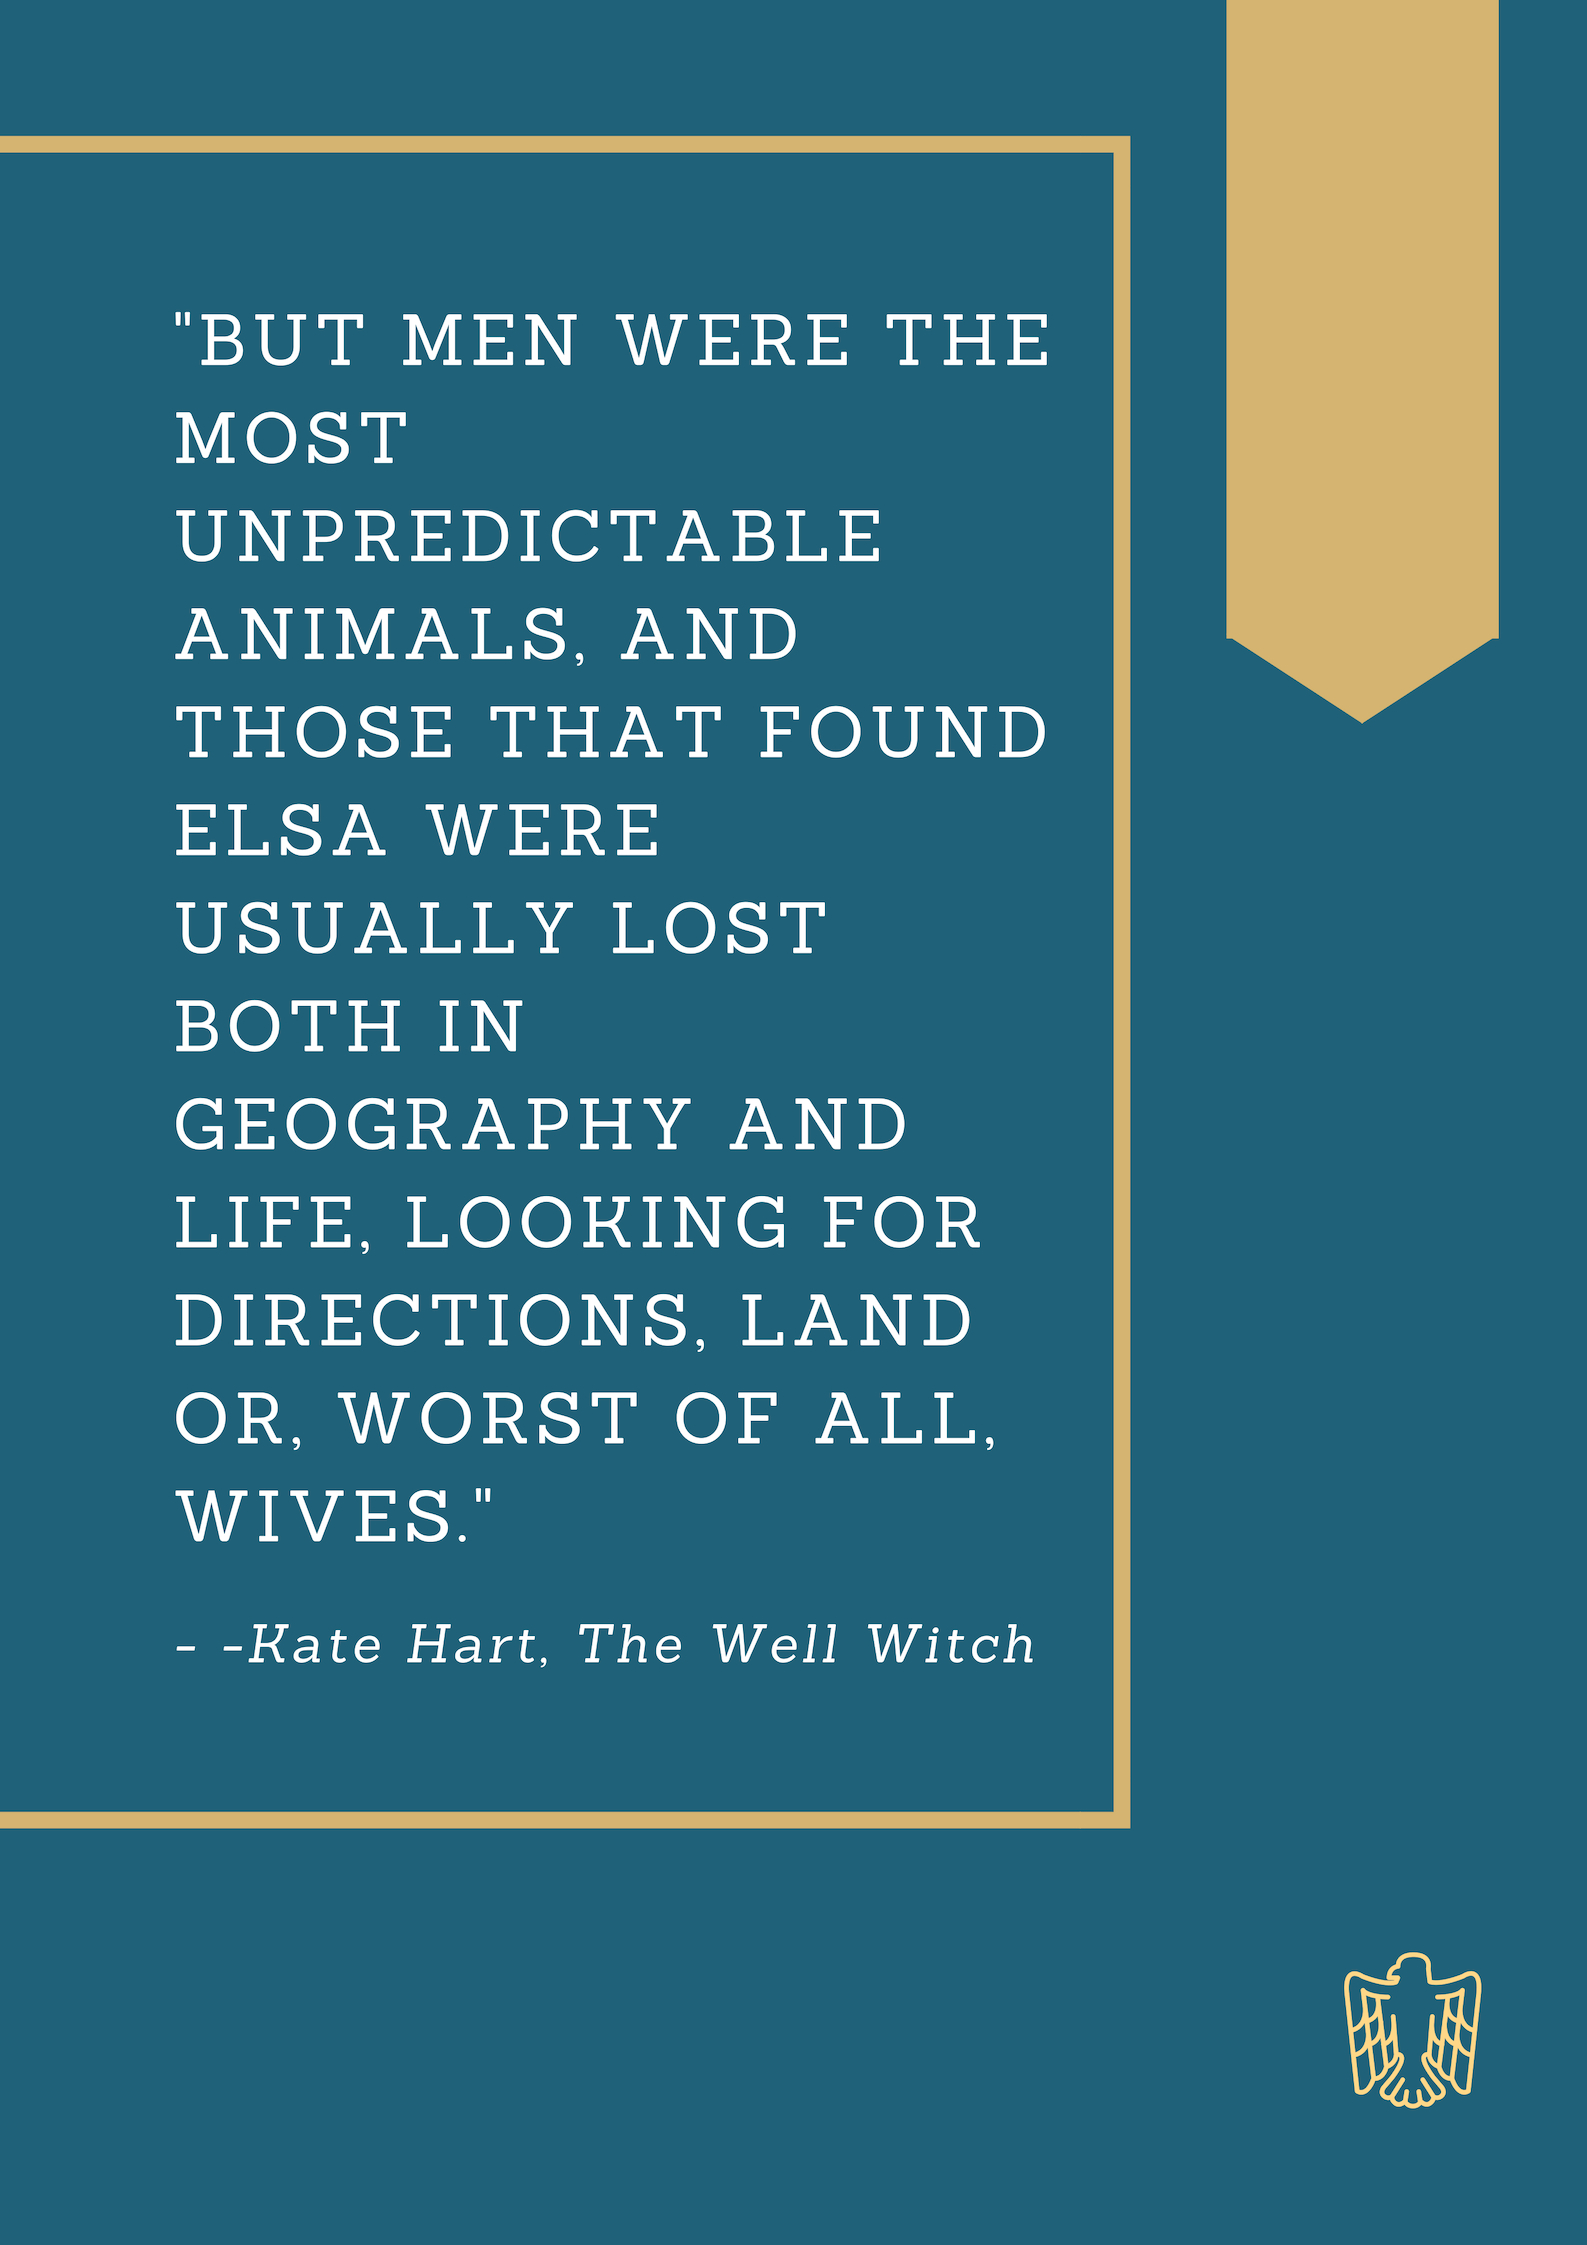 The Well Witch Quotes